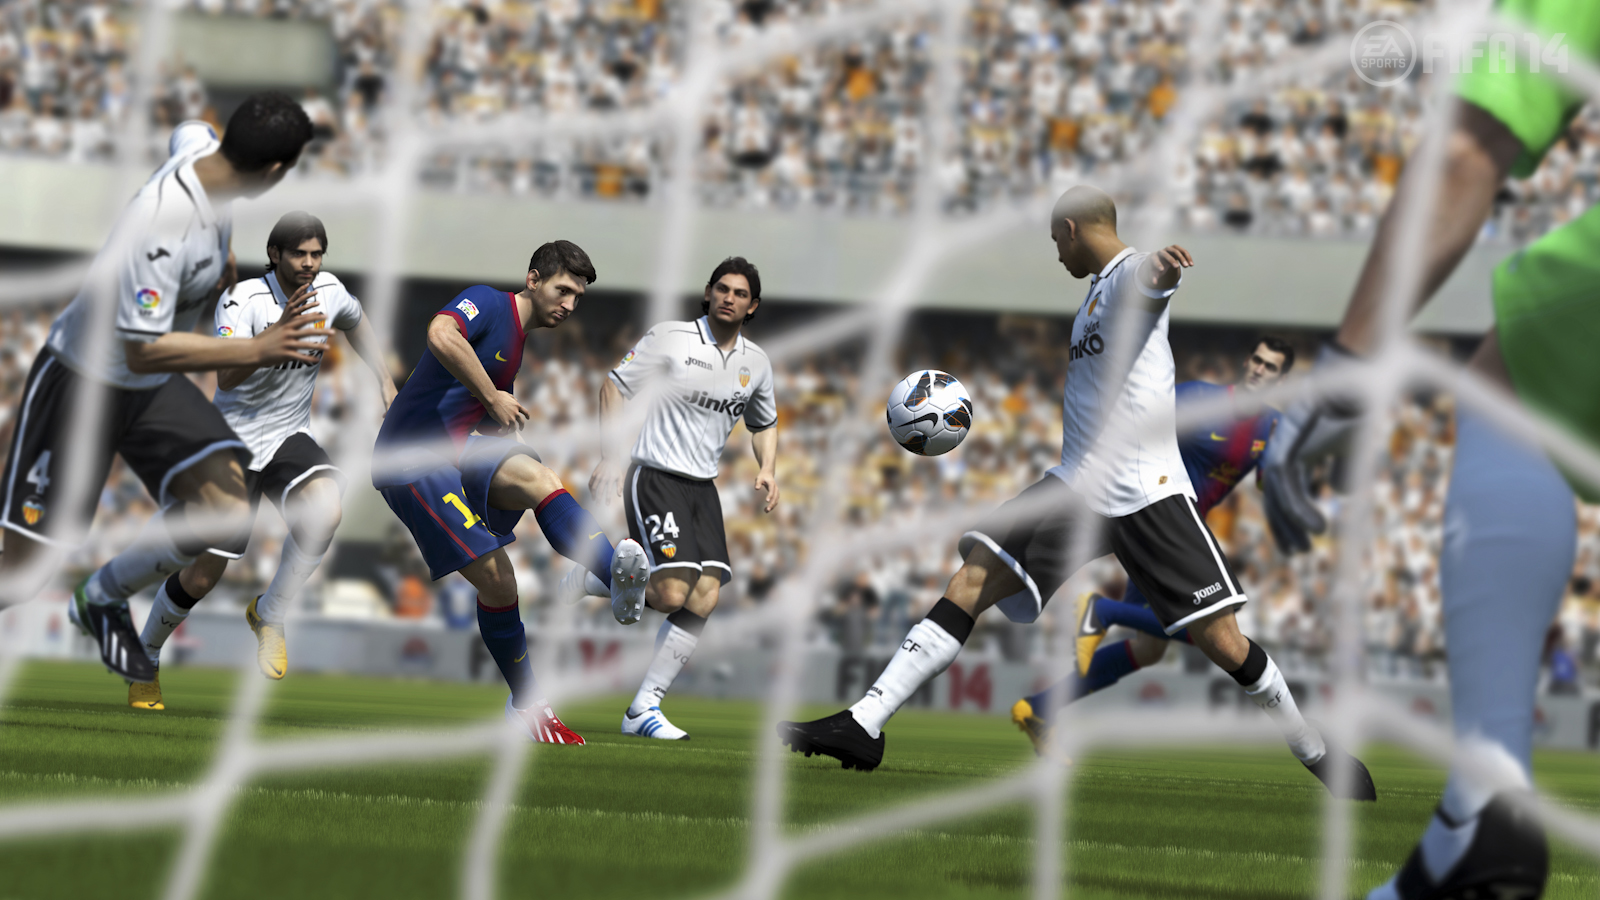 2013-04-21-FIFA14_NG_SP_pure_shot_WM.JPG